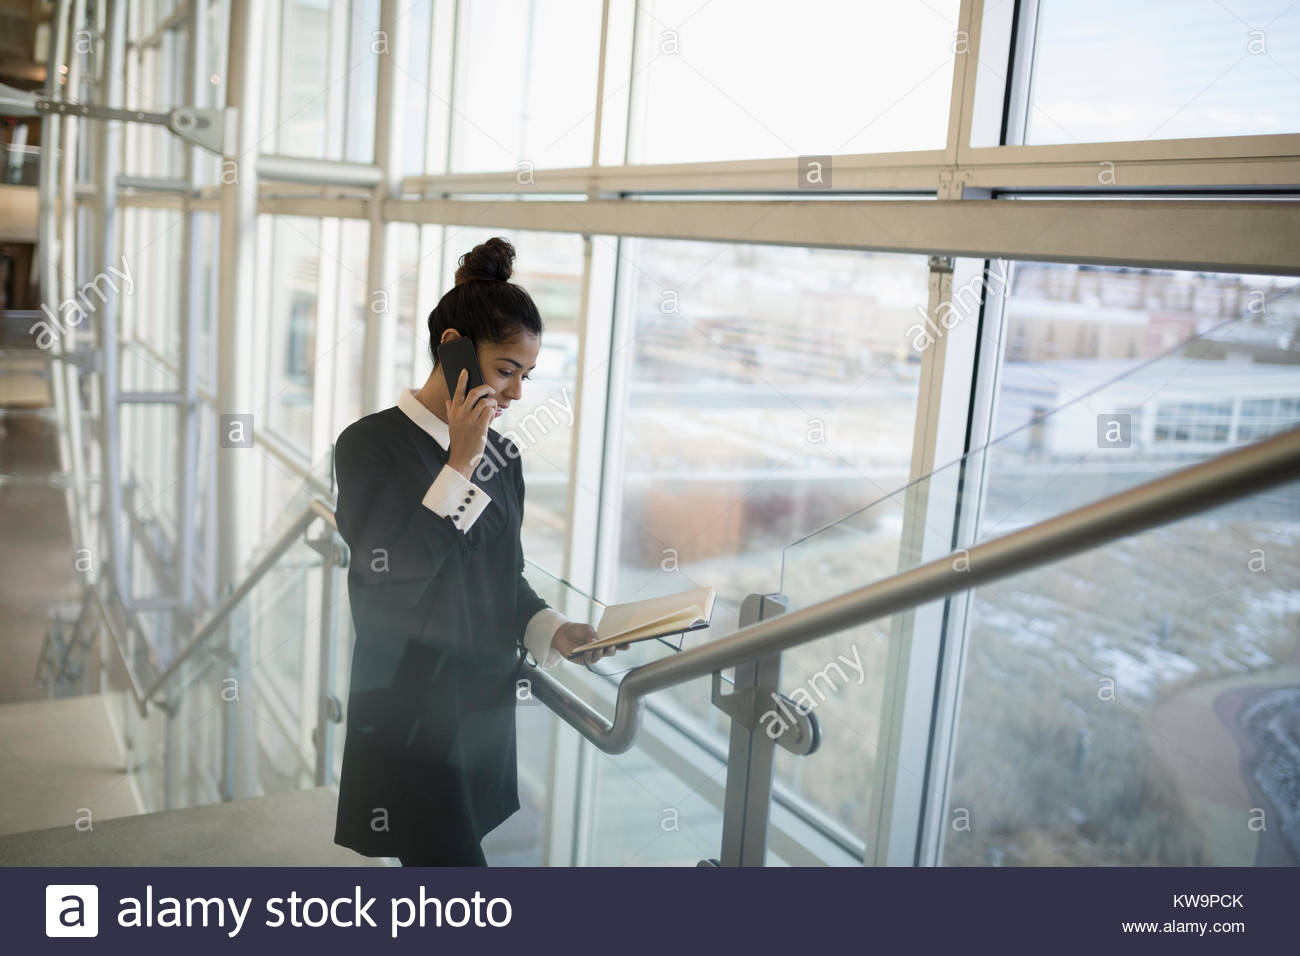 Businesswoman talking on cell phone and checking schedule on office stairs - Stock Image